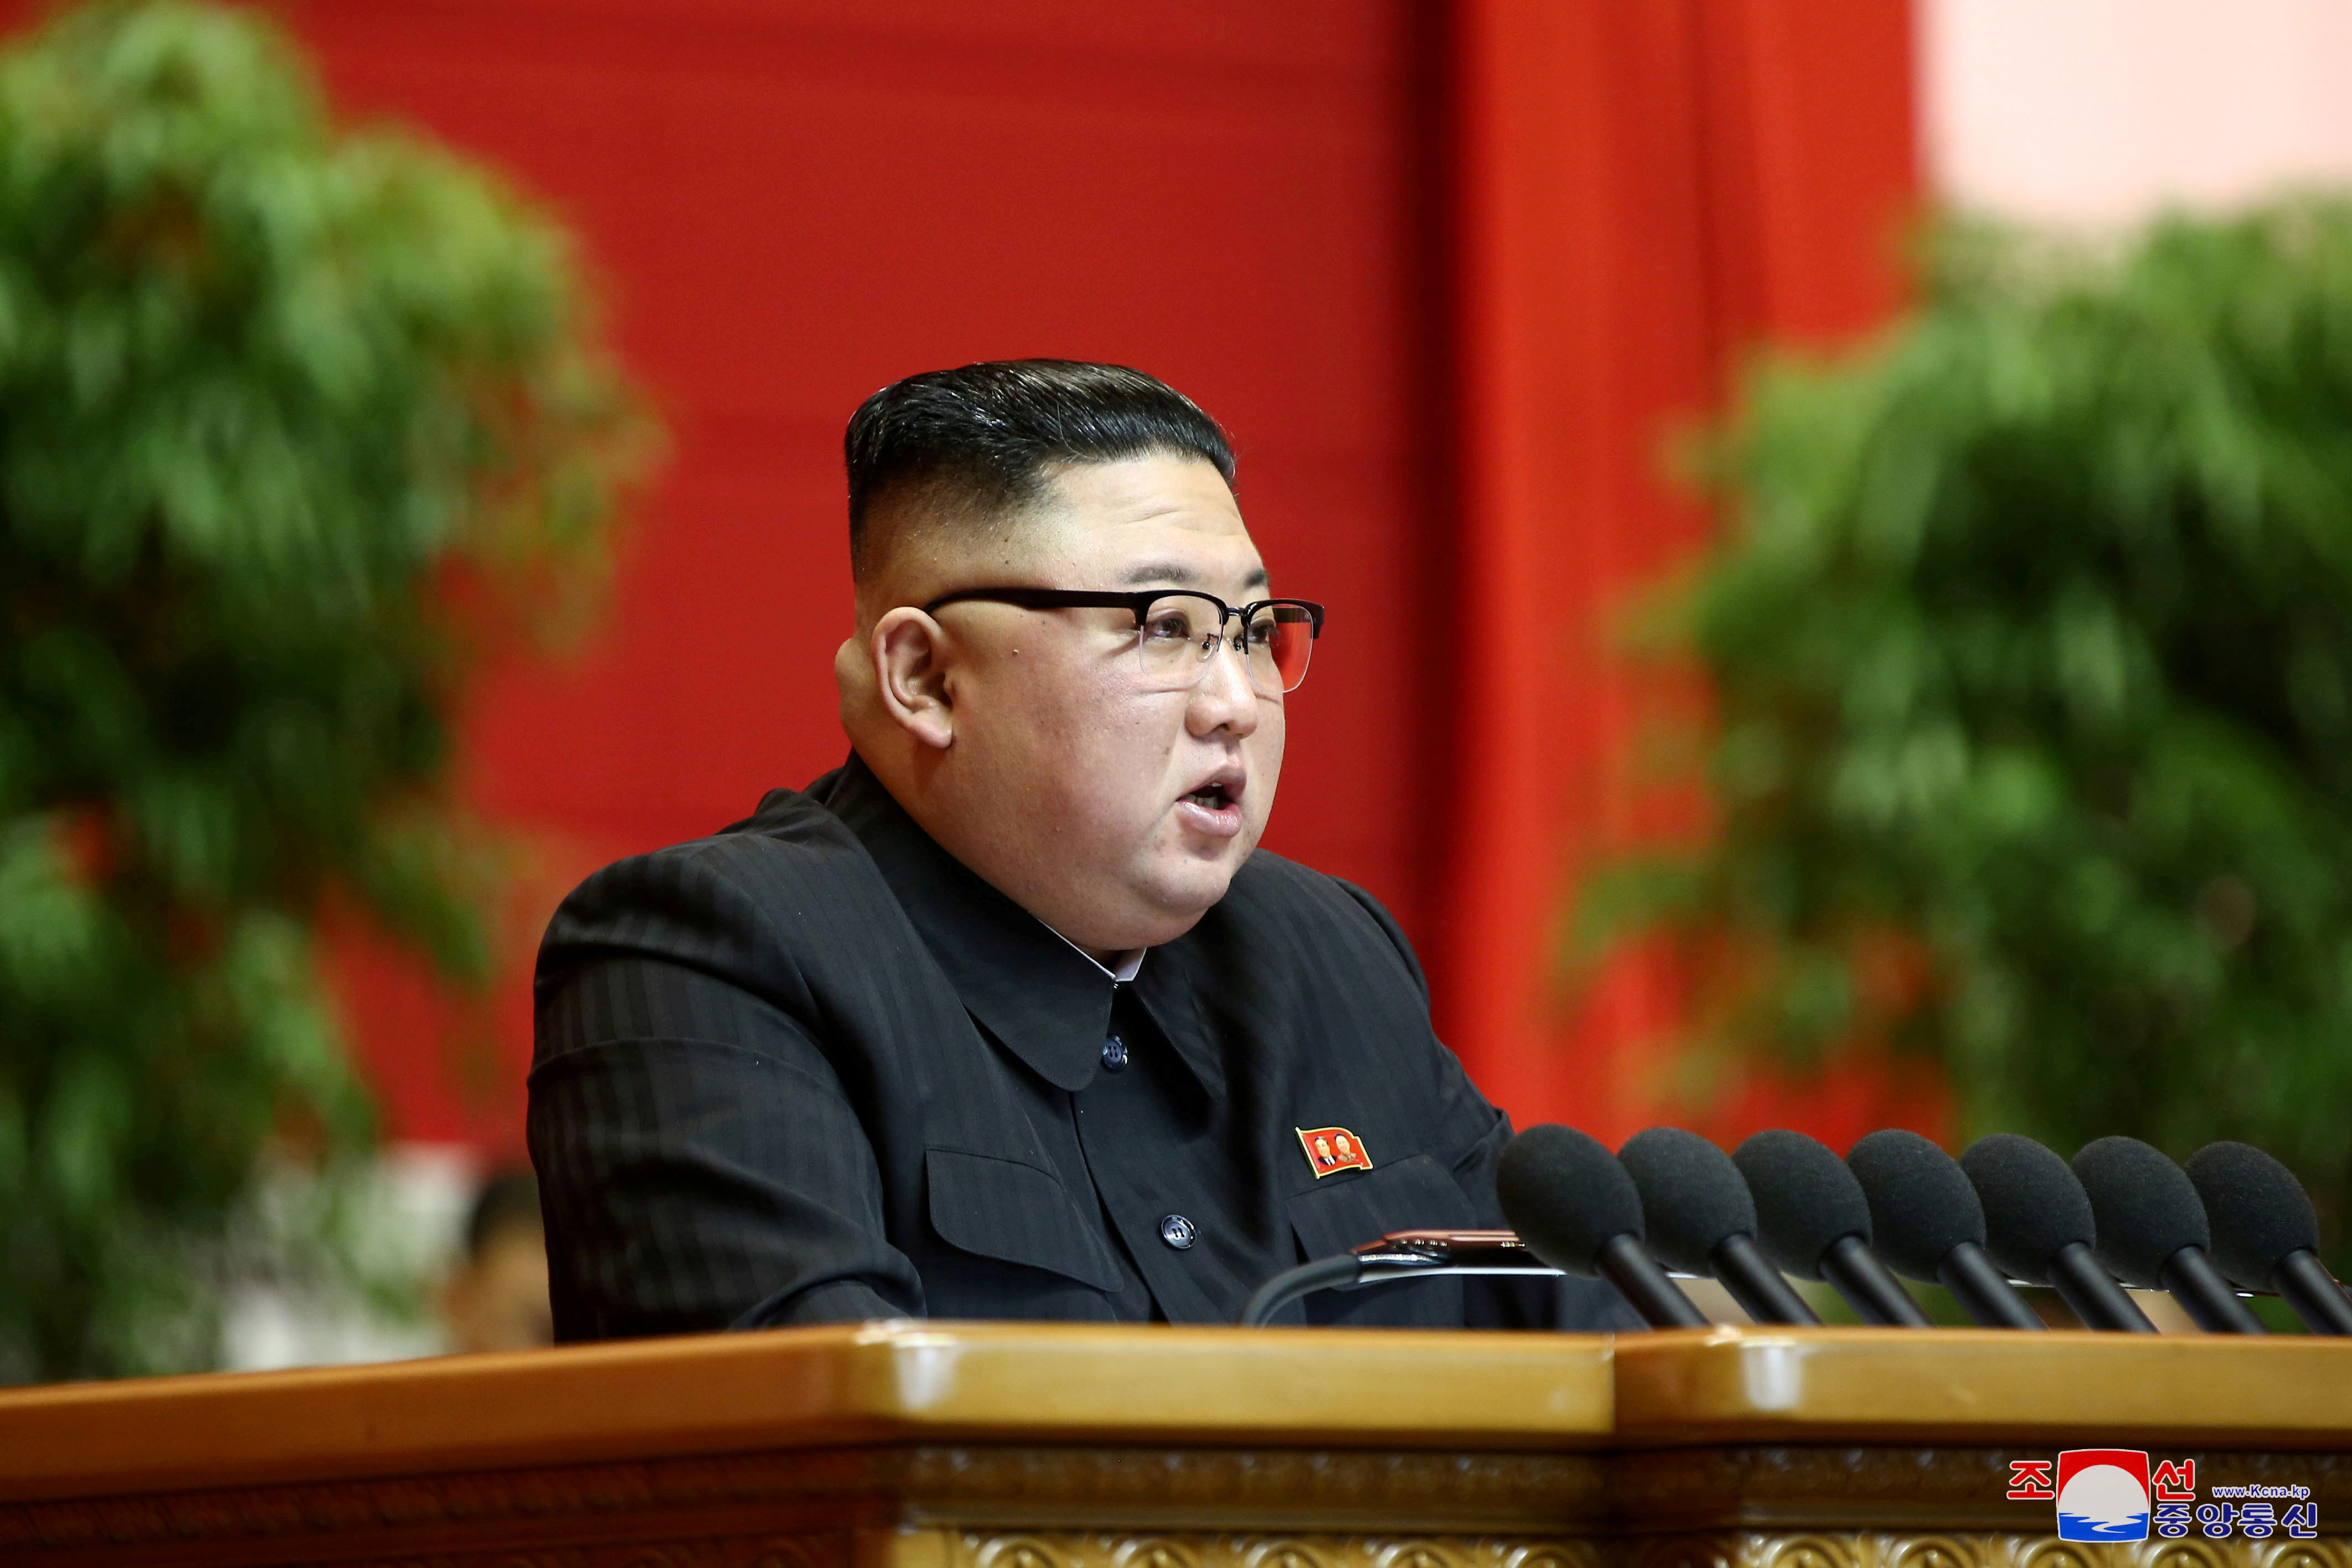 North Korean leader Kim Jong Un speaks during the 8th Congress of the Workers' Party in Pyongyang, North Korea, in this photo supplied by North Korea's Central News Agency (KCNA) on January 13, 2021. KCNA/via REUTERS